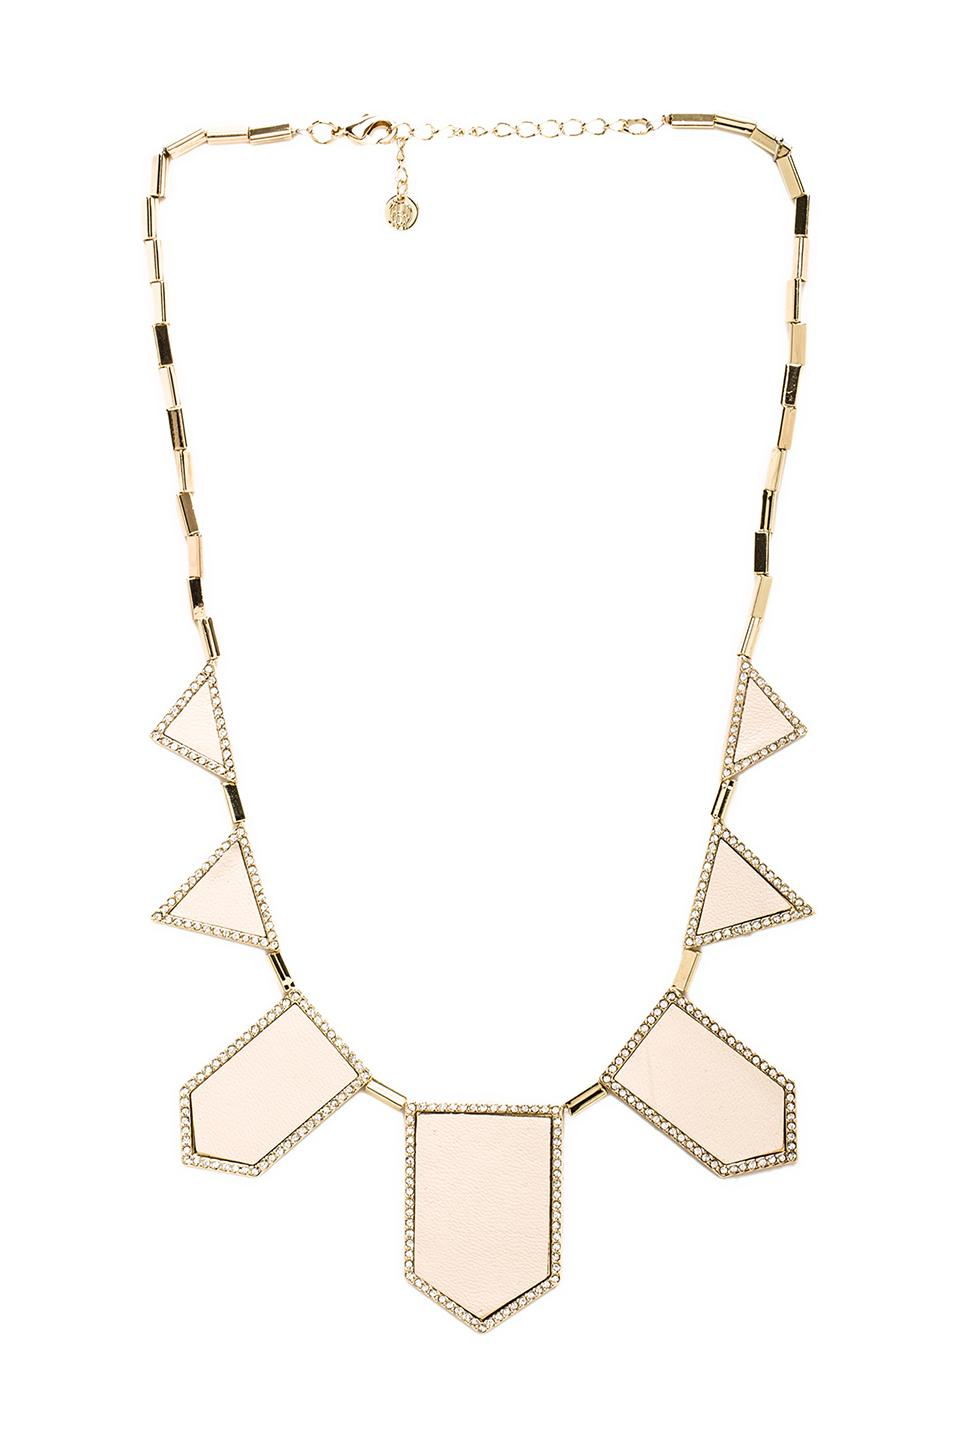 House of Harlow Pave Five Station Necklace in Gold Tone Cream